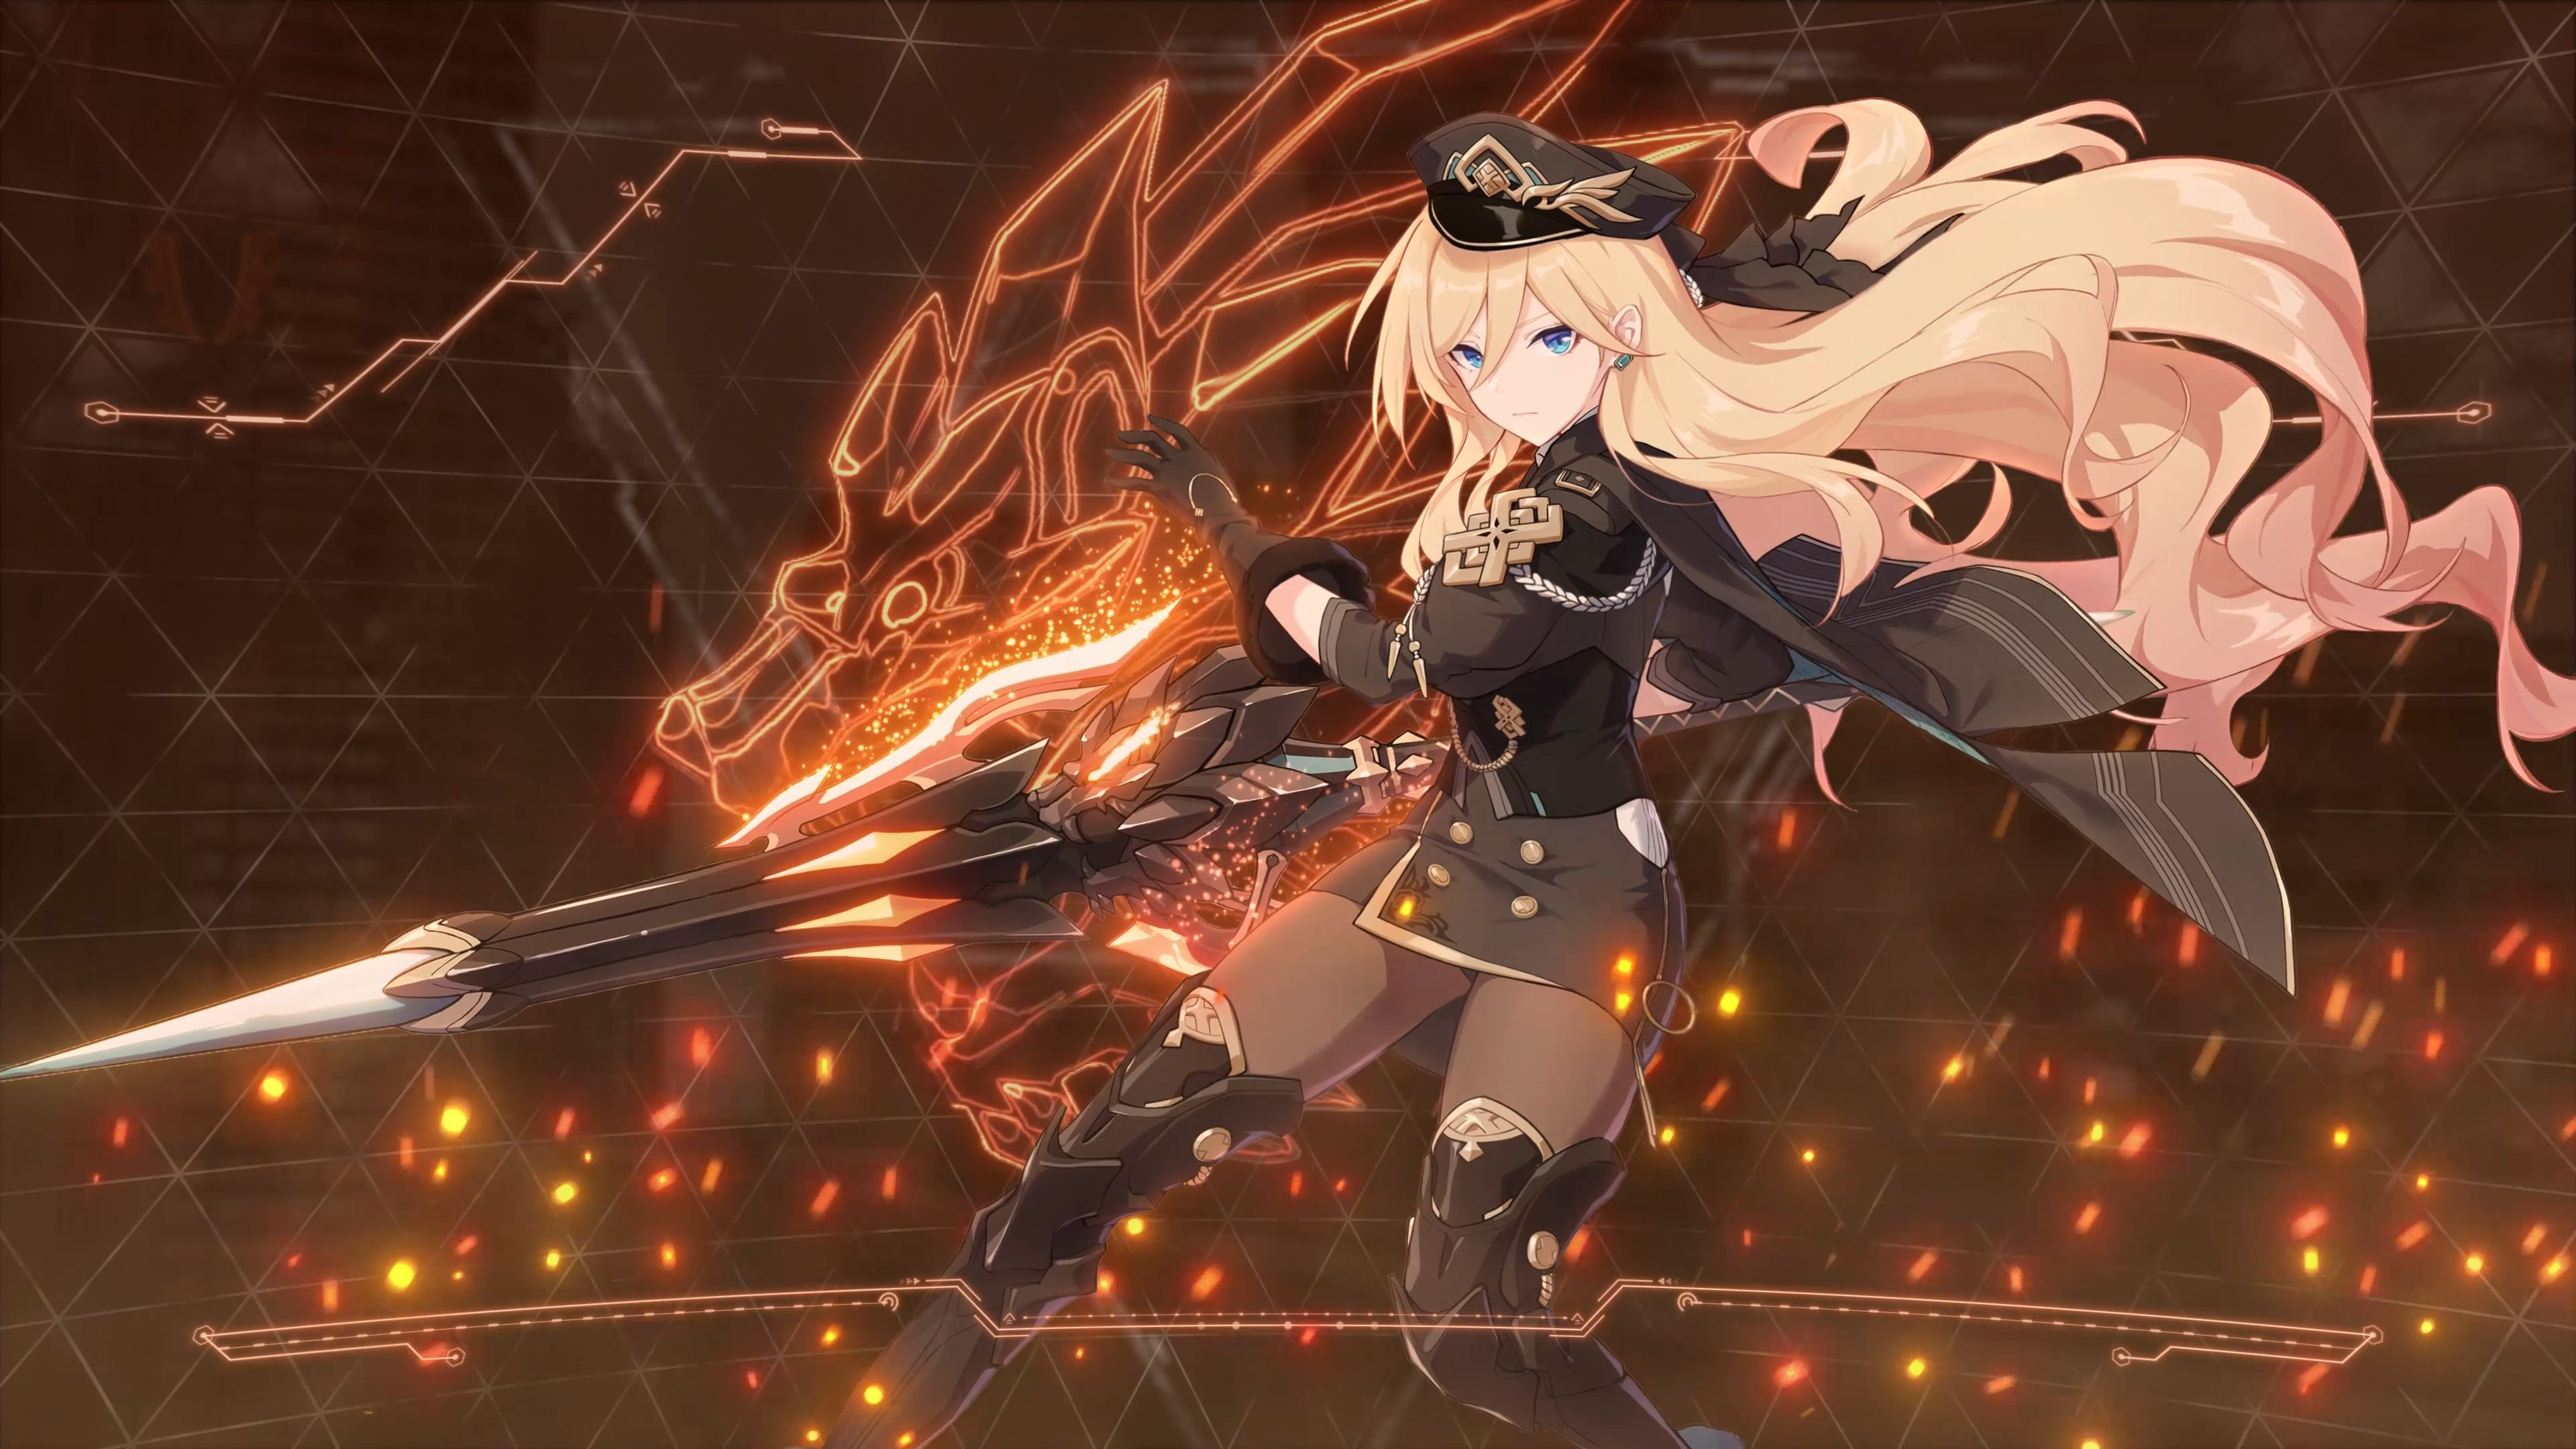 As someone who spends hours fiddling with the flashing rgb components in my computer,. Honkai Impact 3 - Valkyrie Gloria Durandal 4K [Wallpaper ...